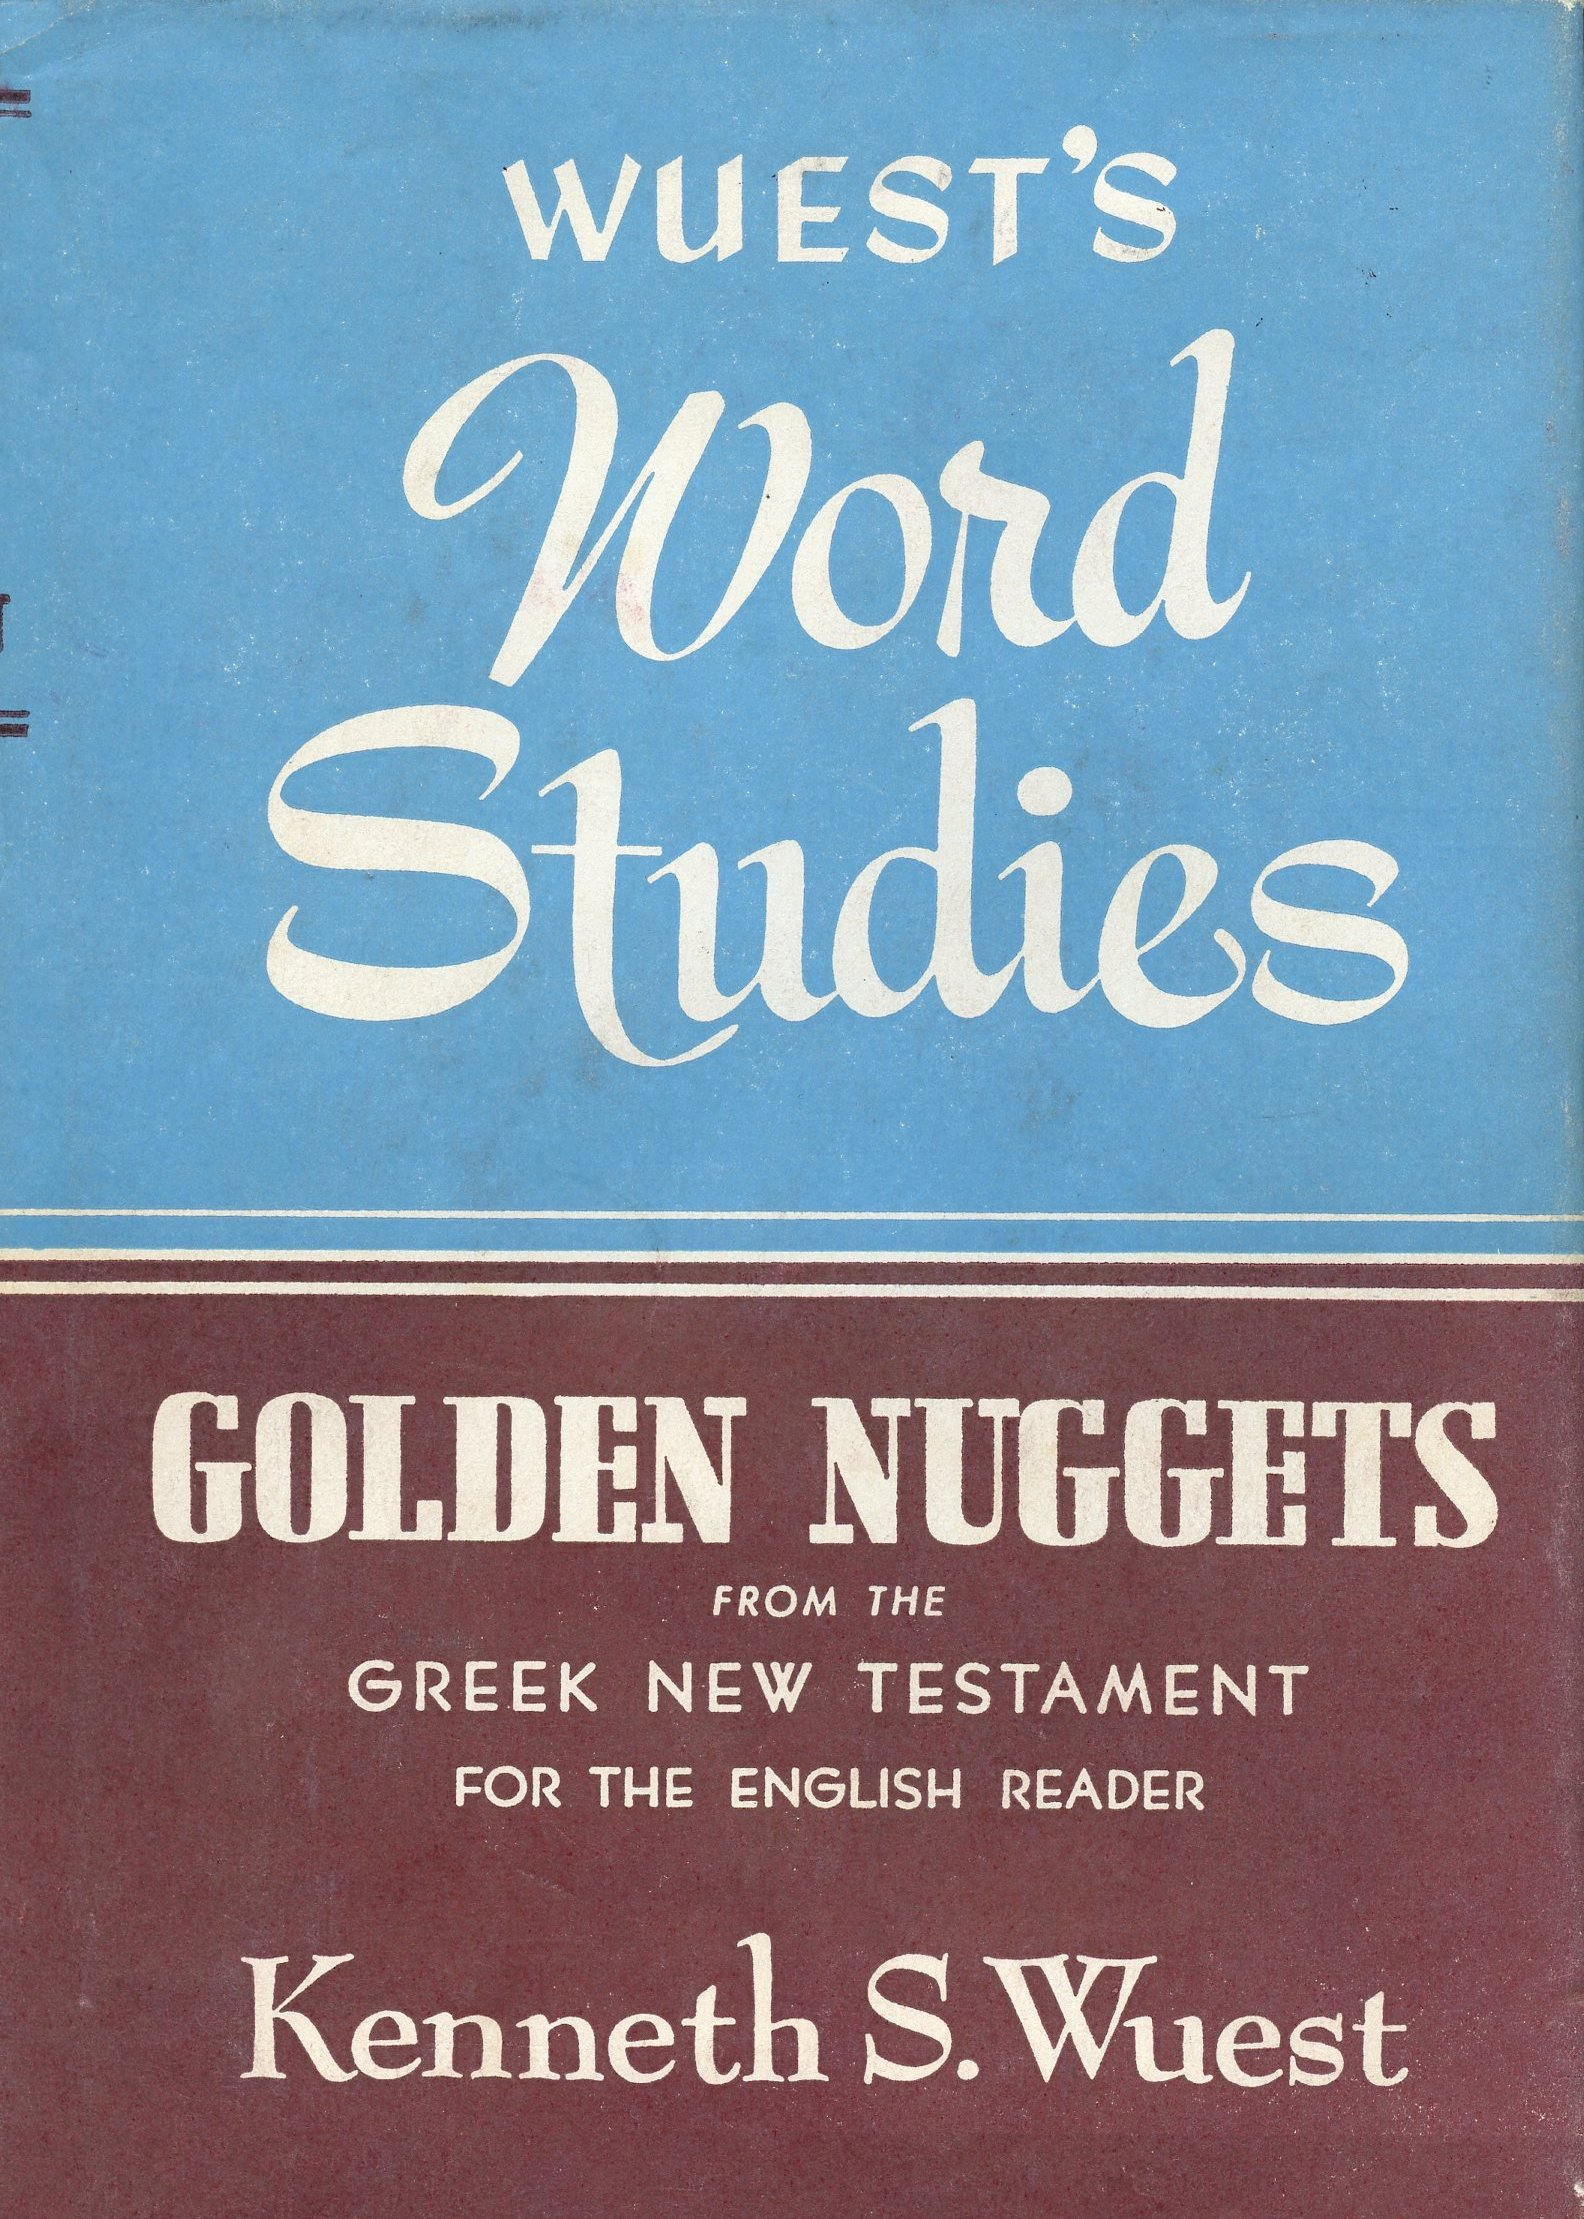 Wuest S Word Studies Golden Nuggets From The Greek New Testament For The English Reader Kenneth S Wuest Amazon Com Books